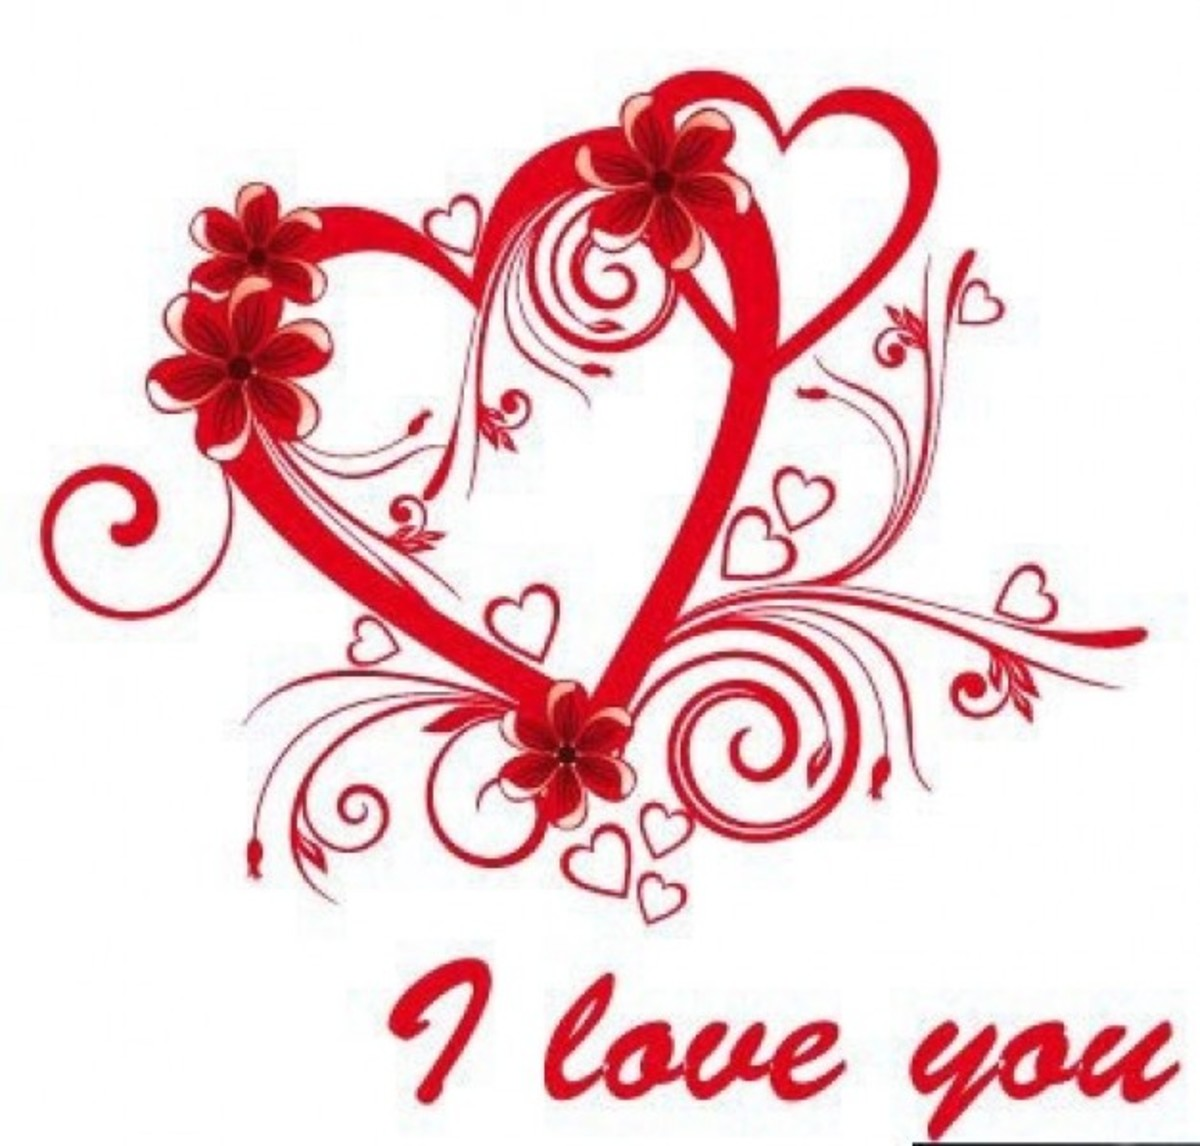 'I Love You' Heart Picture